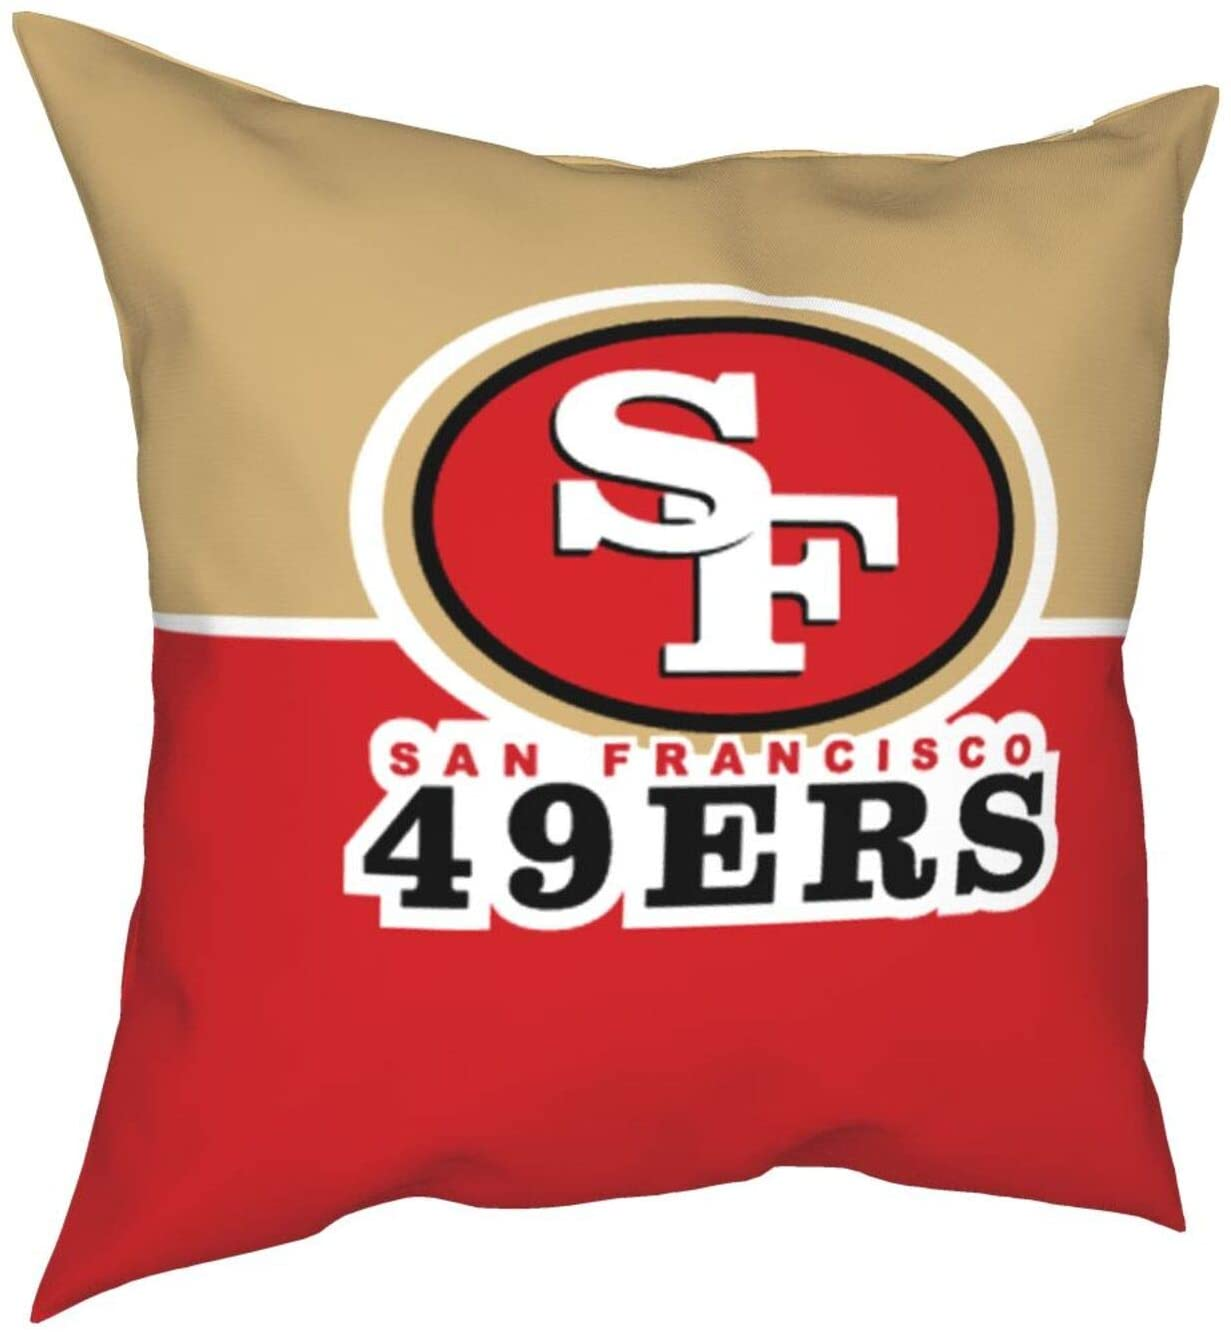 Sa-N Fra-Nci-SCO 49-Ers Square Throw Pillow Covers, Modern Decorative Breathable Cool Ultra Soft Pillow Cases for Indoor Outdoor Bedroom Living Room Bed Sofa 18 X 18 Inch